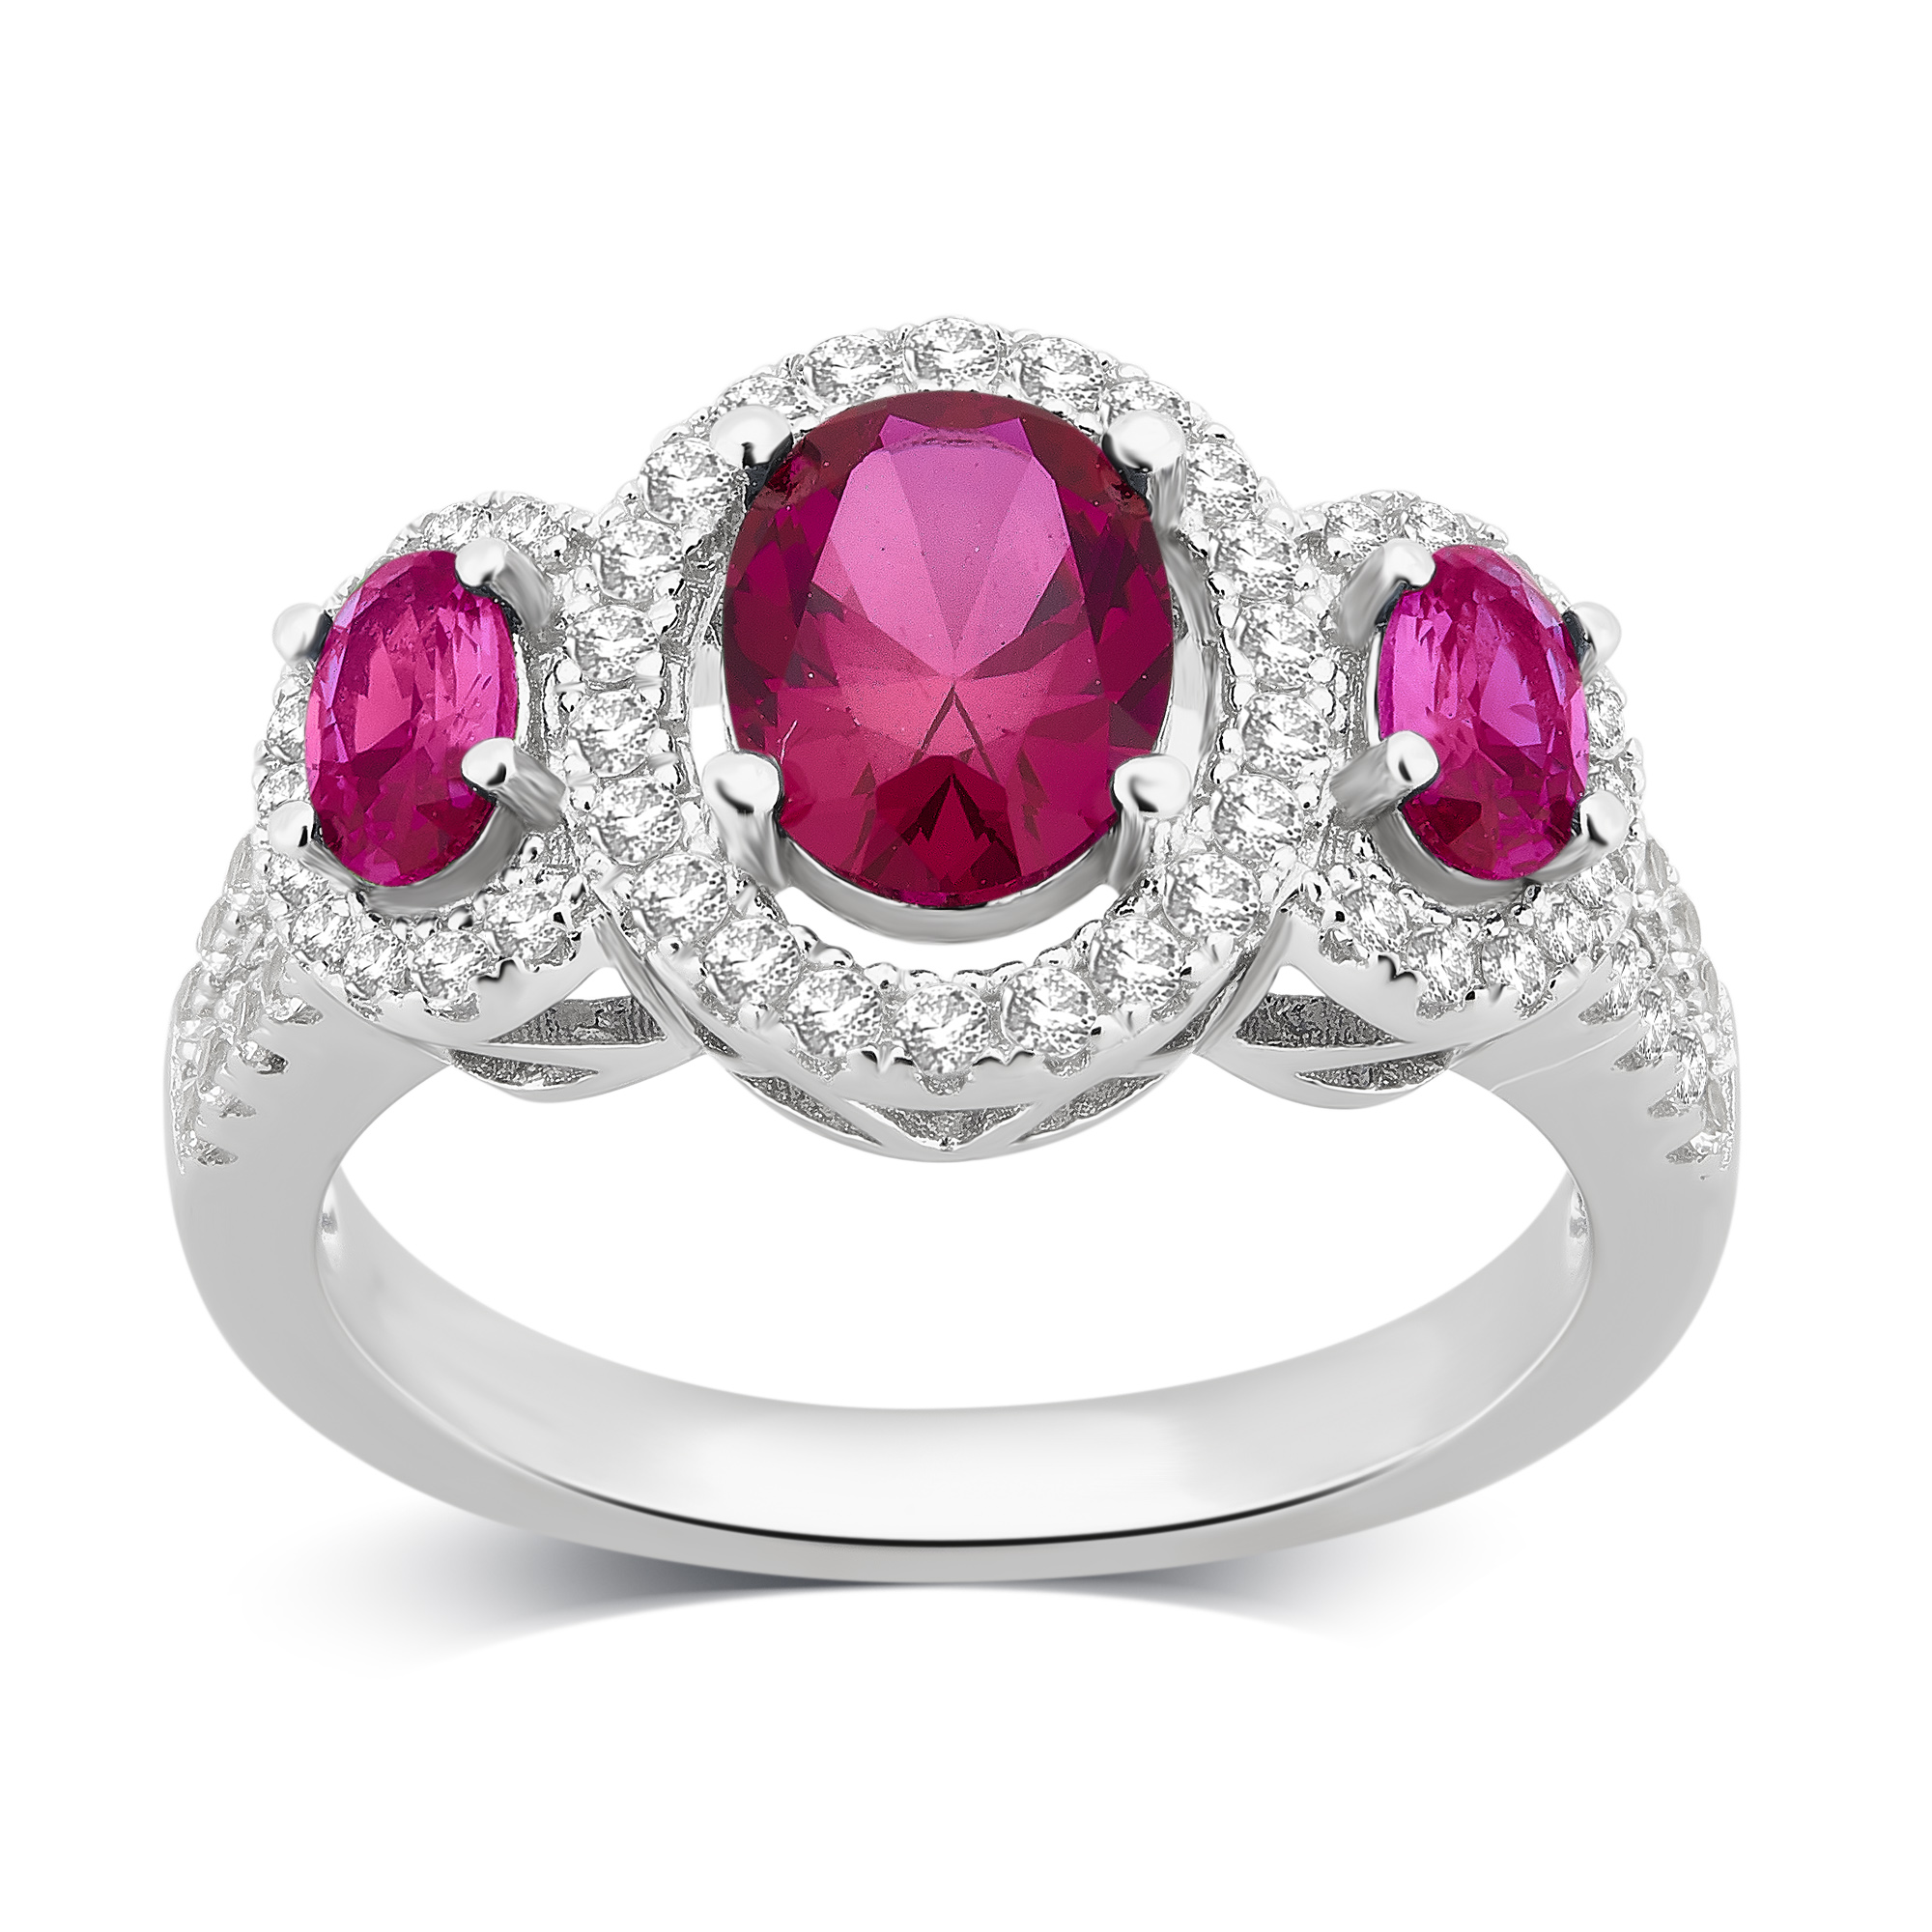 2.00 Cttw Created Ruby-White Sapphire Ring in Silver